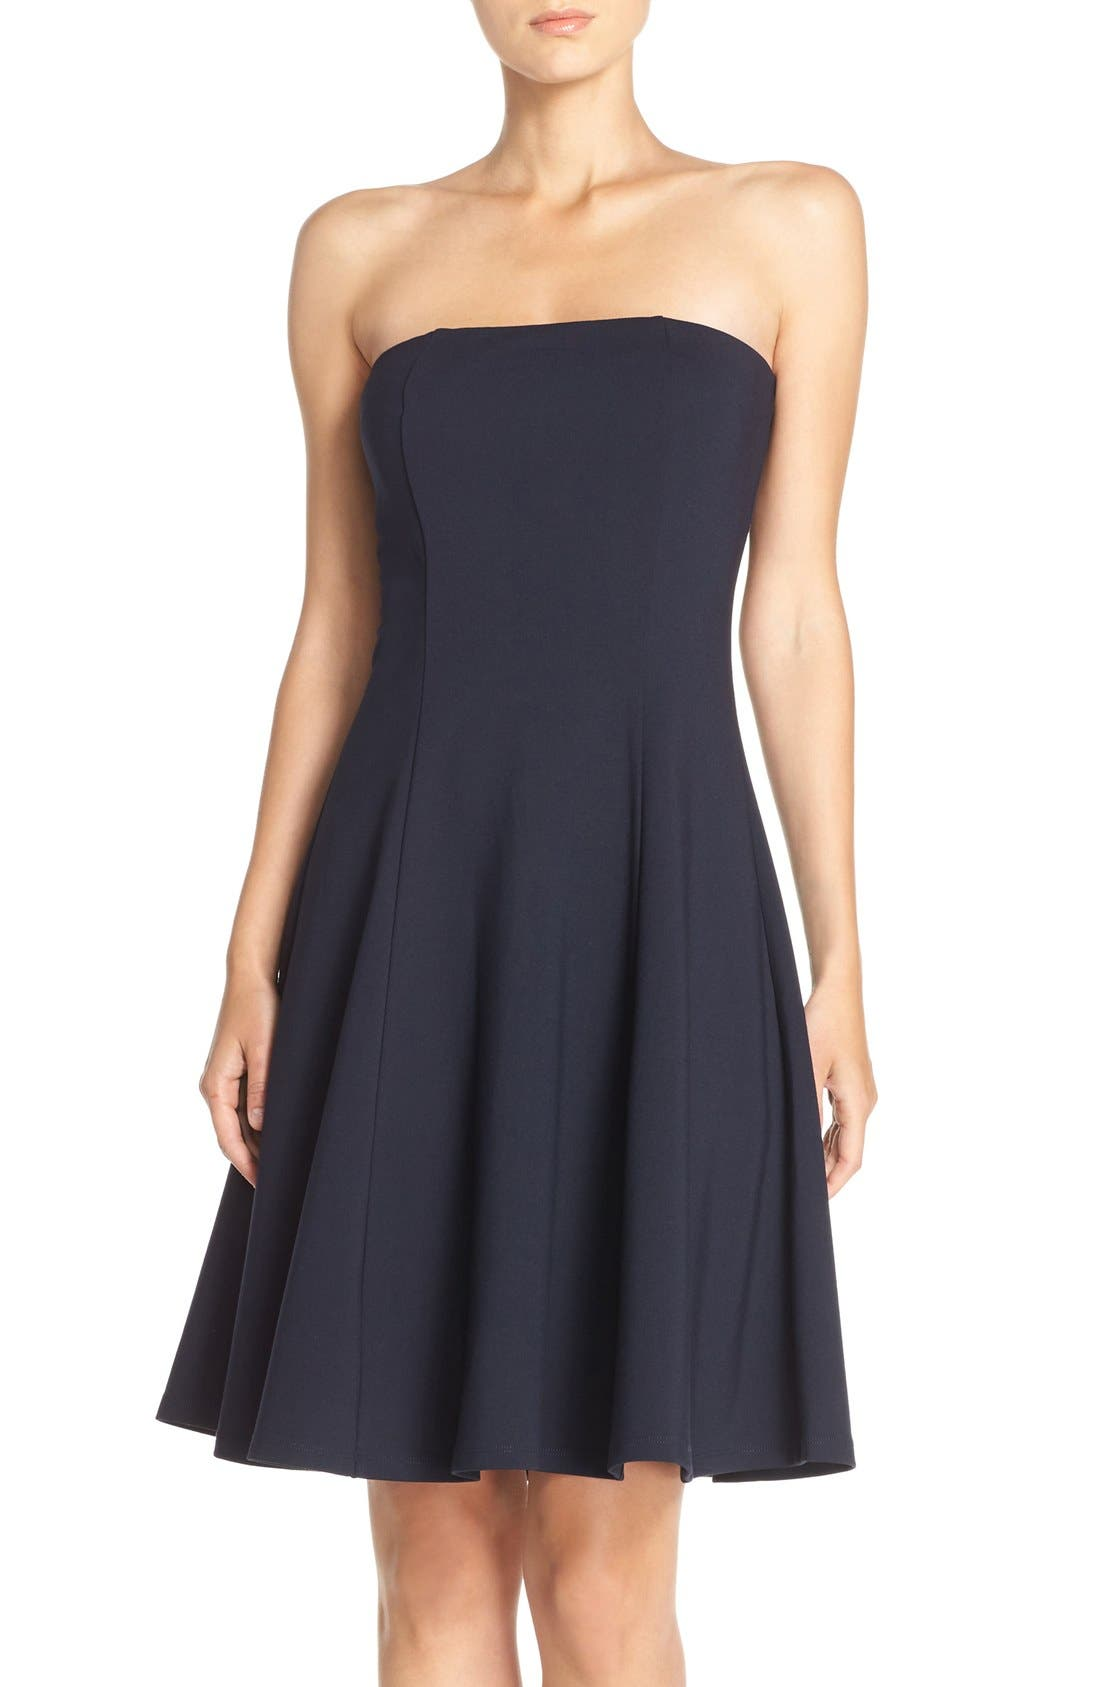 Alternate Image 1 Selected - Felicity & Coco Strapless Fit & Flare Dress (Nordstrom Exclusive)